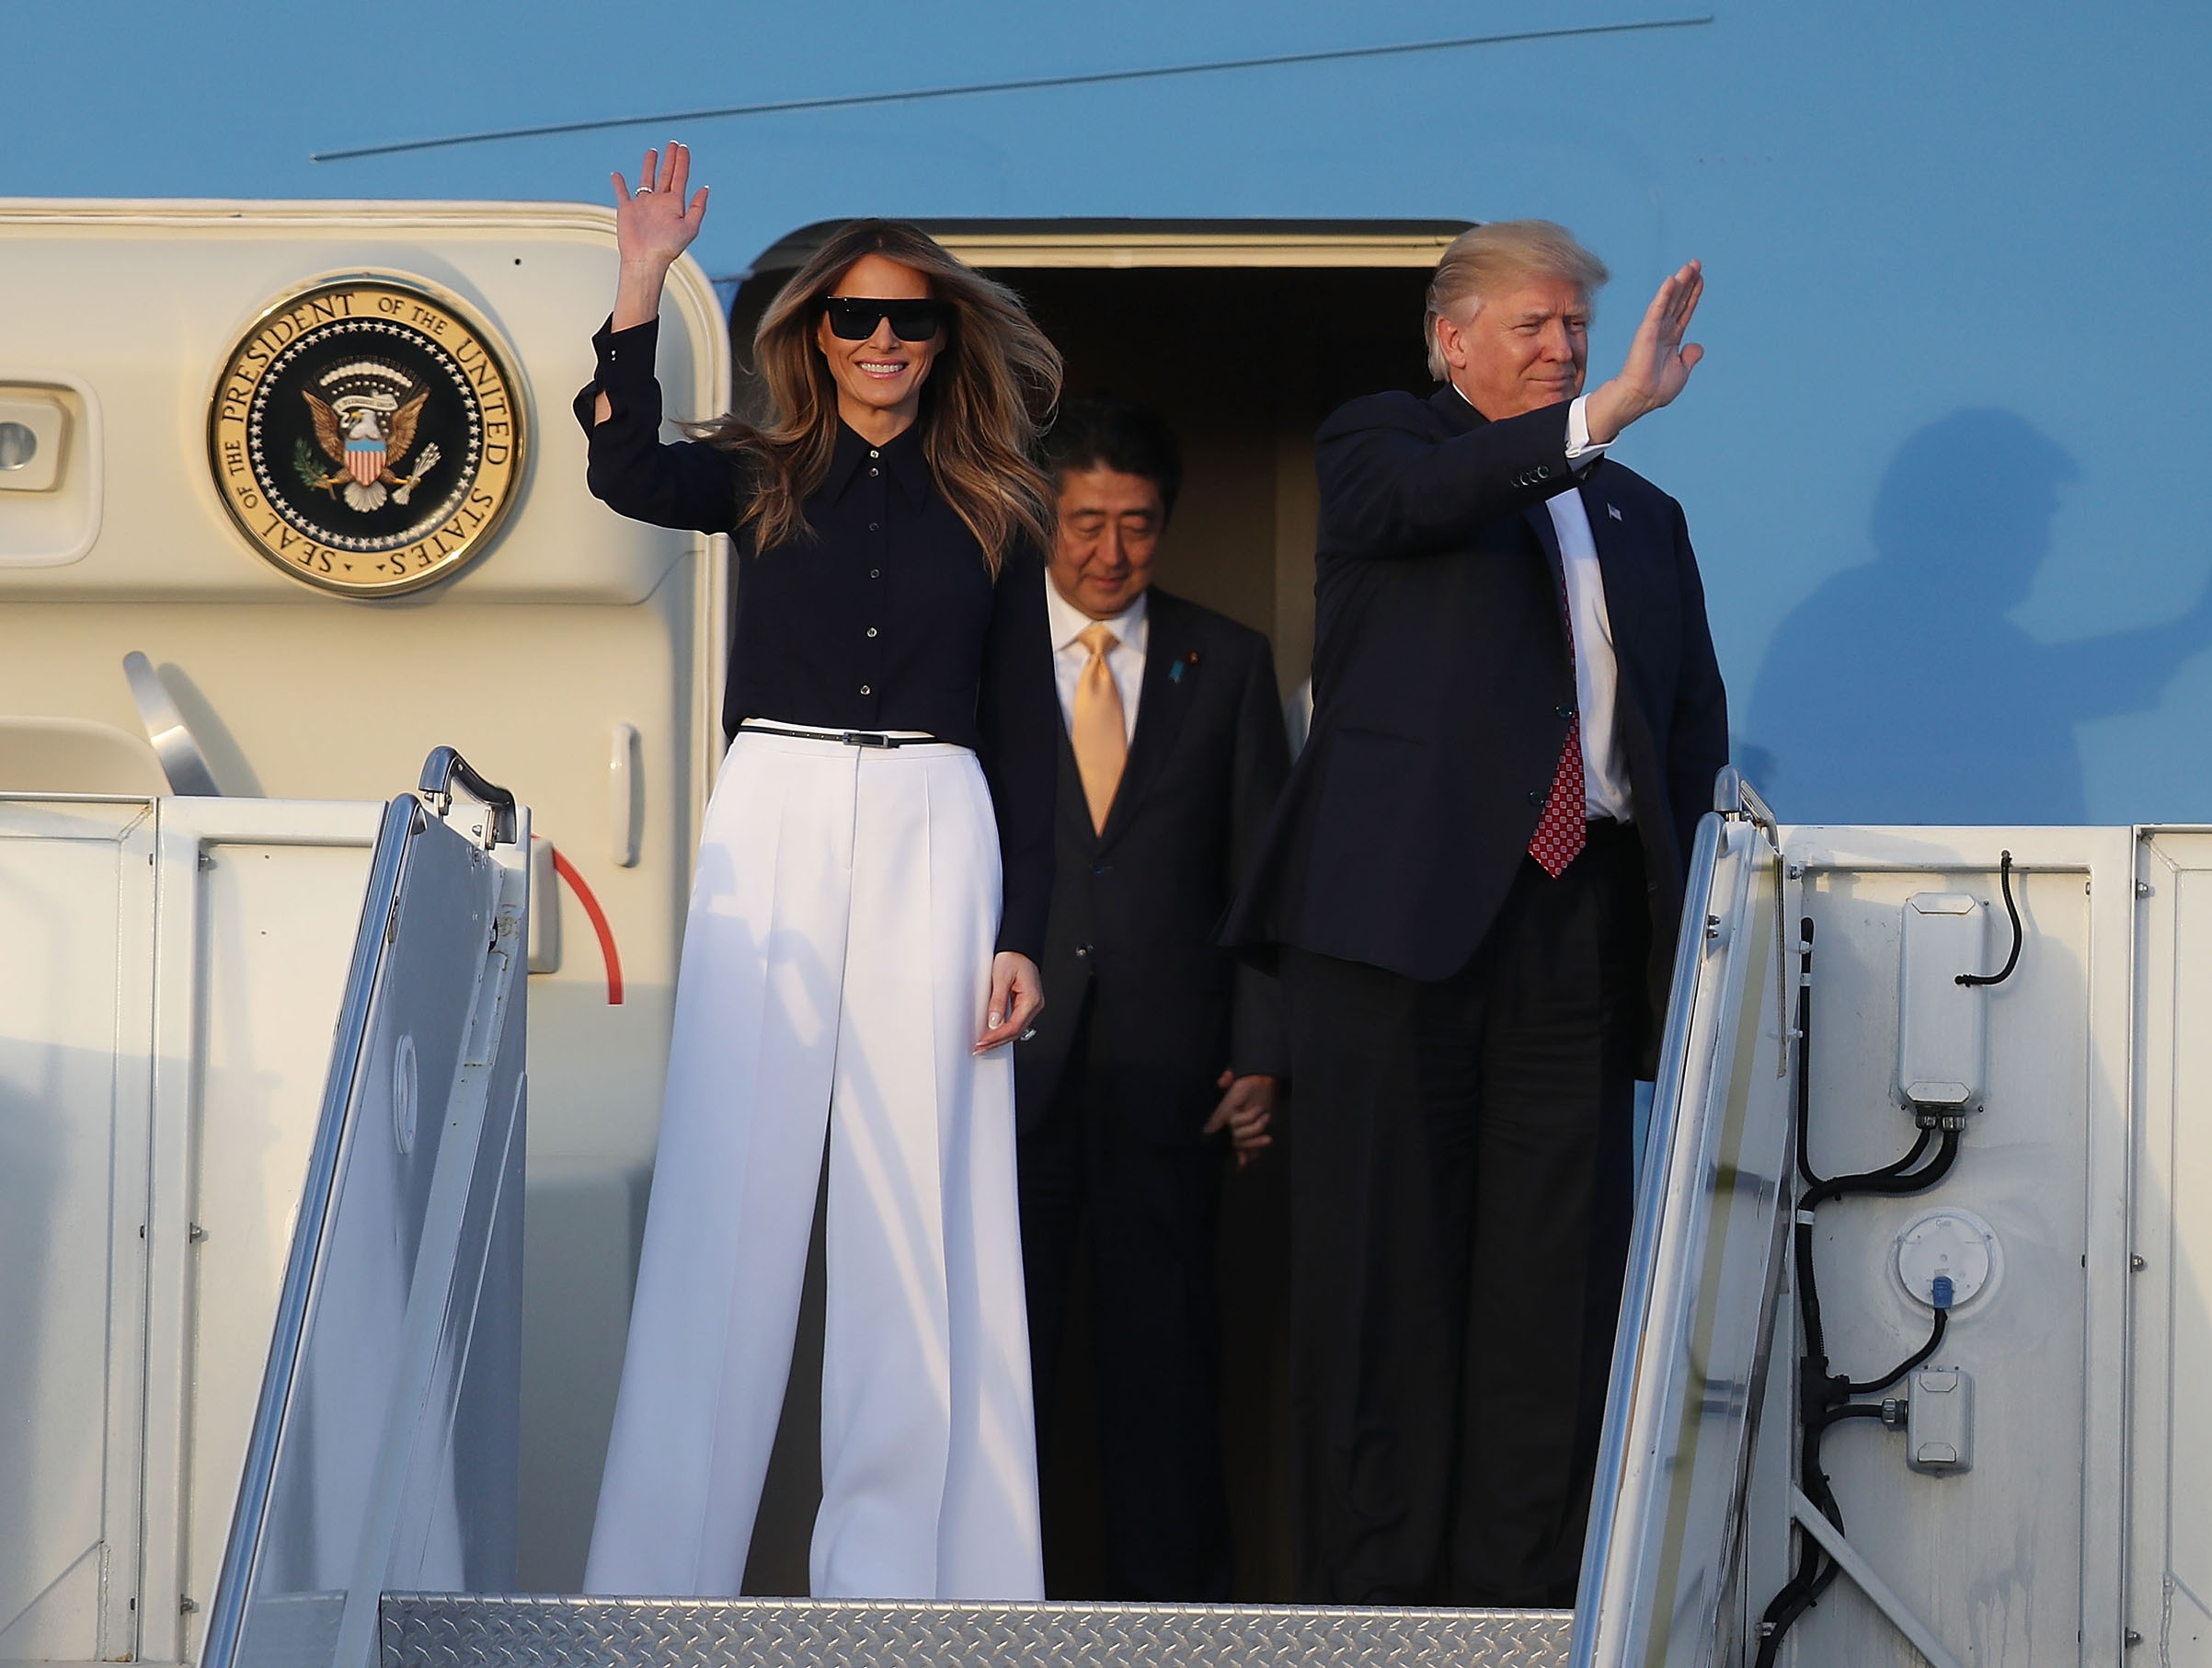 President Donald Trump and first lady Melania Trump , wearing black blouse and white wide-legged pants, arrive with Japanese Prime Minister Shinzo Abe on Air Force One at the Palm Beach International Airport Feb. 10, 2017 in West Palm Beach, Fla.